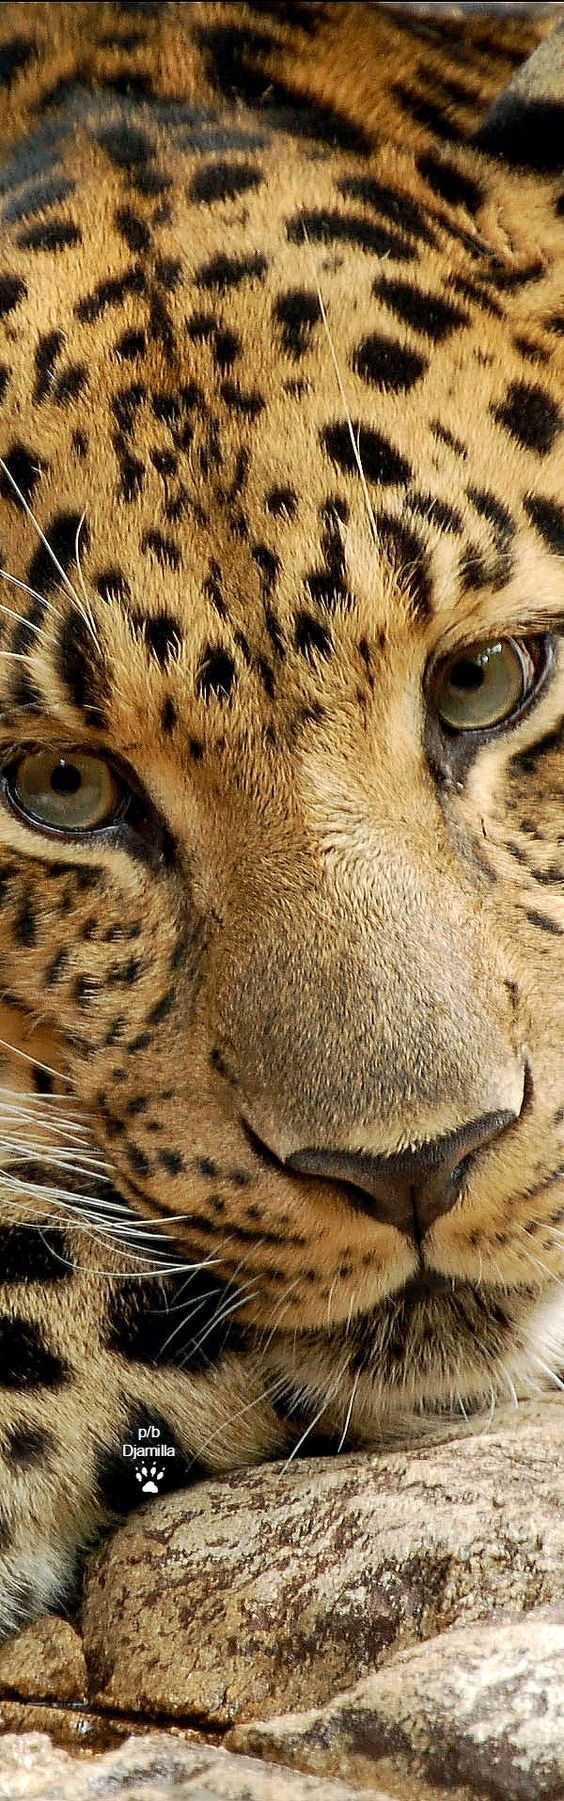 Leopard face closeup visit here to learn more about some of the big cats the